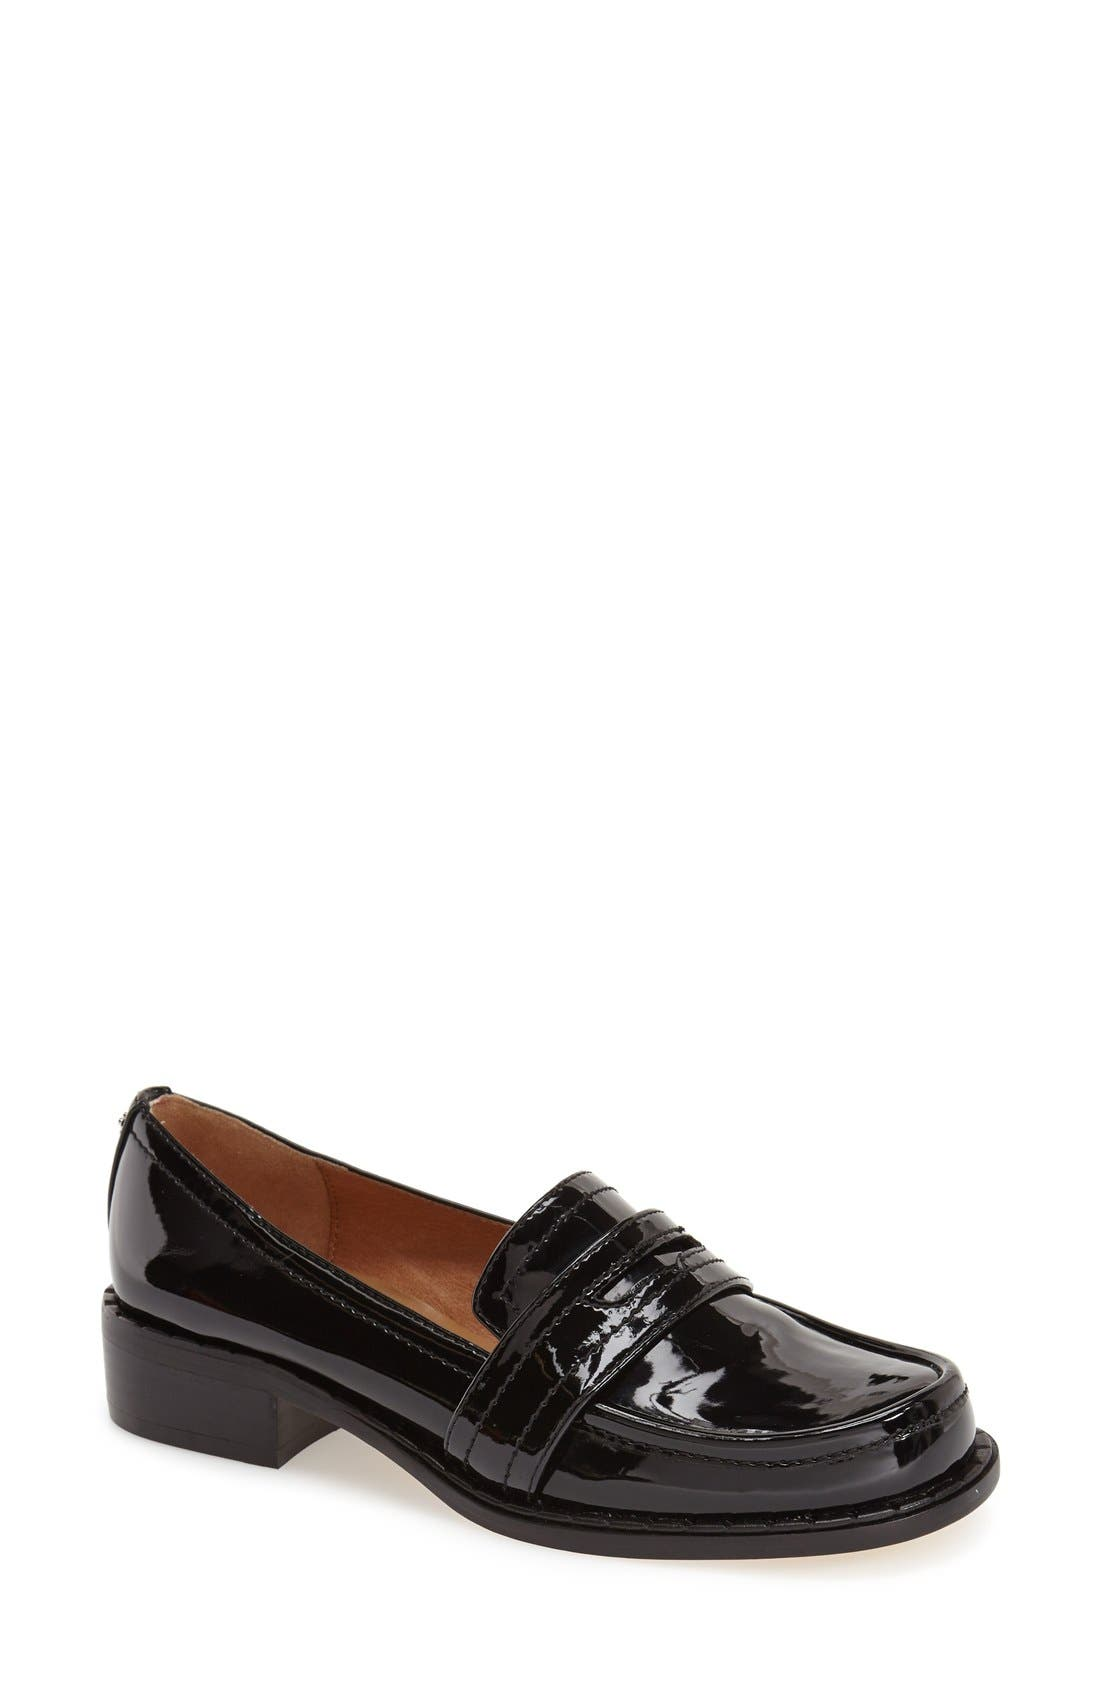 Main Image - Nina Originals 'Mystique' Penny Loafer (Women)